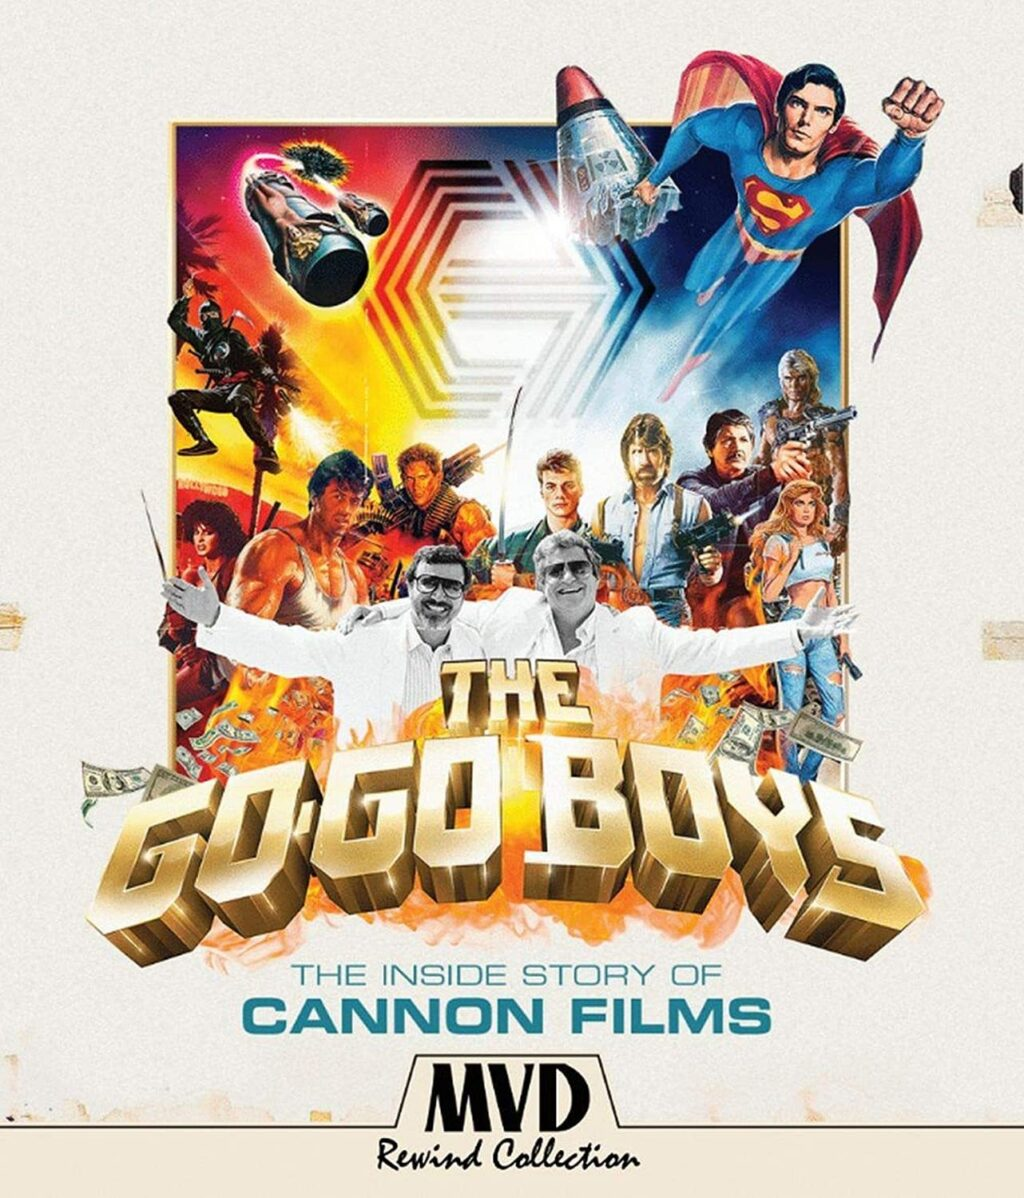 The Go Go Boys The Inside Story of Cannon Films will be released on Blu ray and DVD on July 20 1024x1198 - Cannon Films Doc GO-GO BOYS Now Hits Blu-ray 7/20